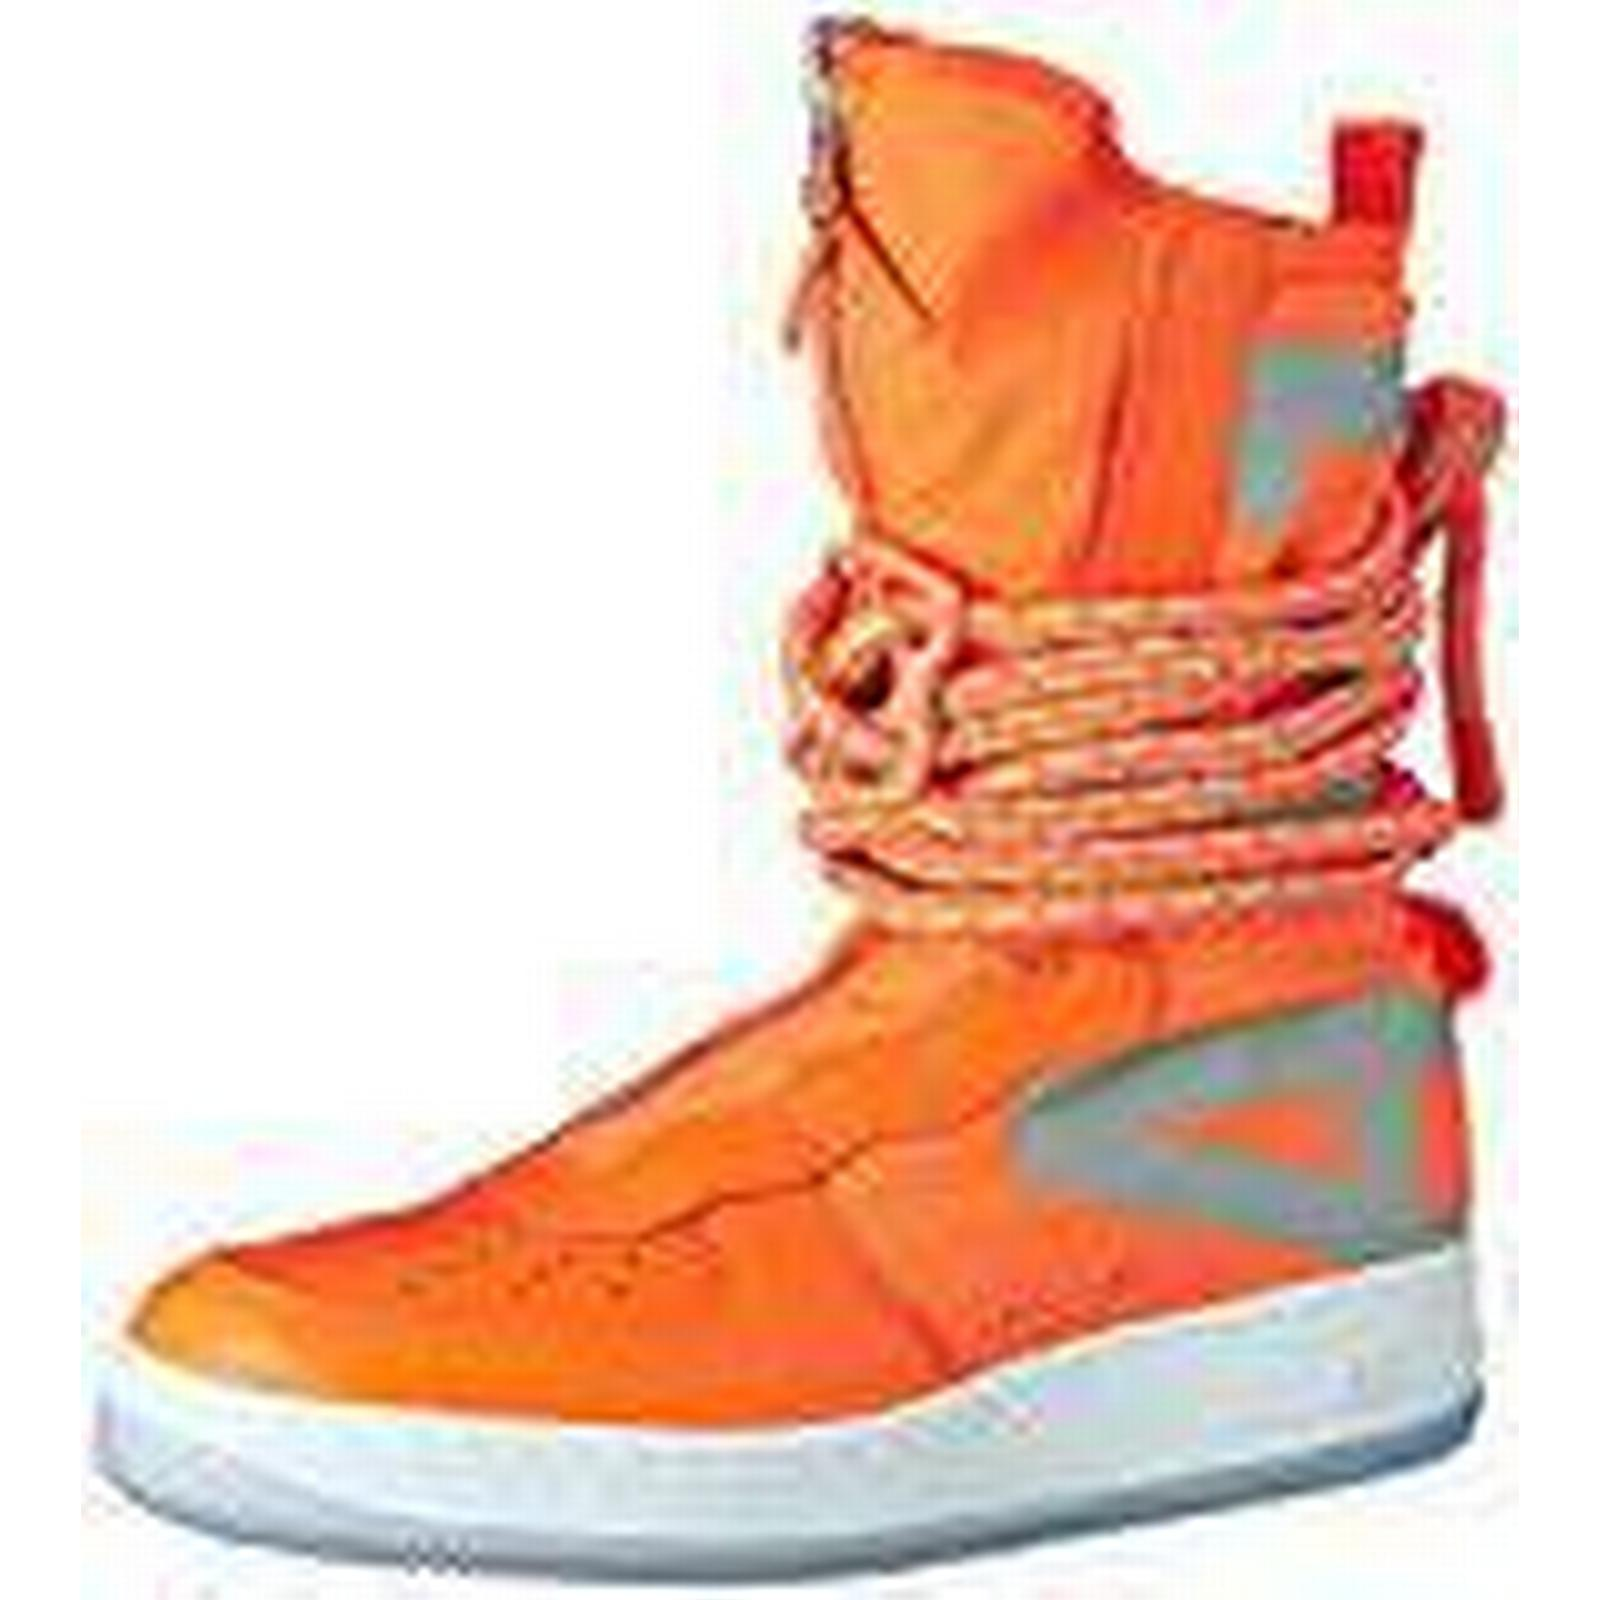 NIKE Men''s Sf Af1 Hi Orangetotal Gymnastics Shoes, Orange (Total Orangetotal Hi Orangewhite), 8 UK 069e46